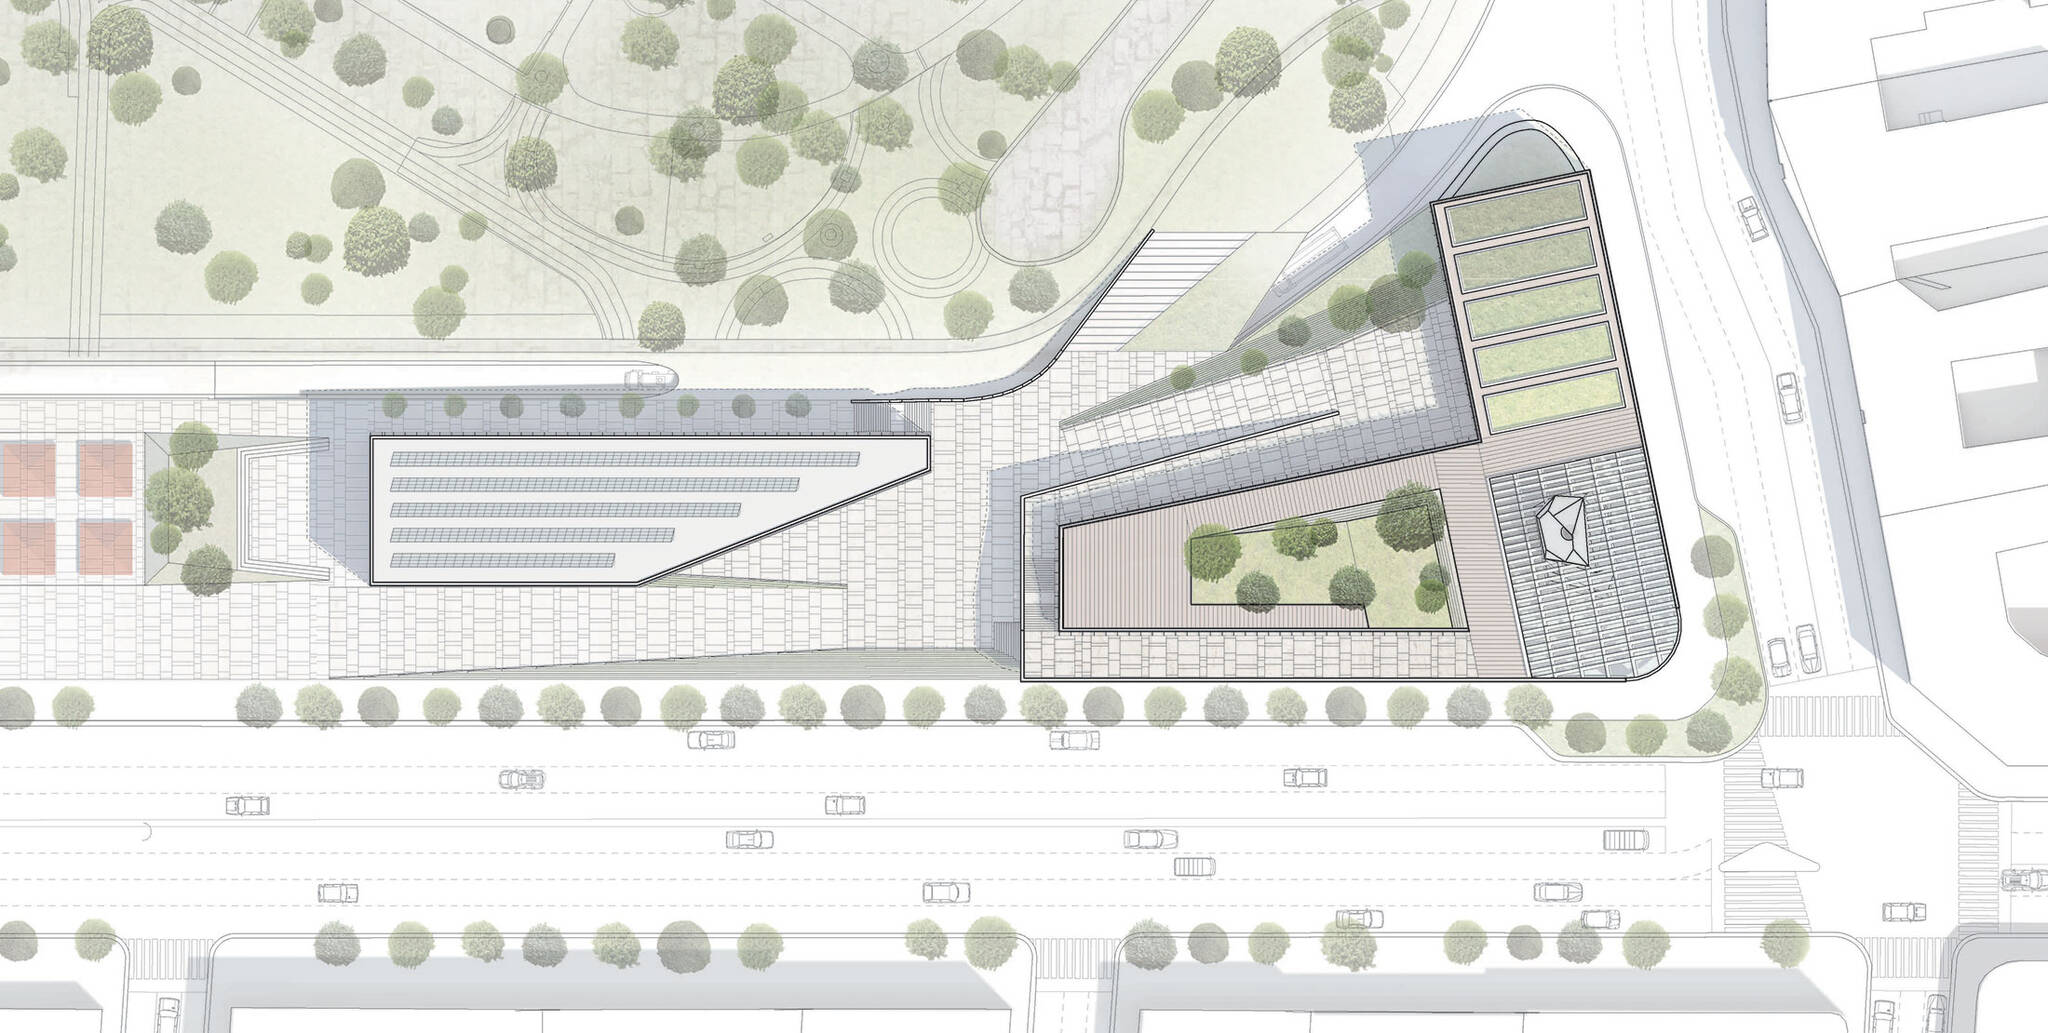 Site plan of the Museum of Etnography project located in Budapest, Hungary designed by the architecture studio Danny Forster & Architecture